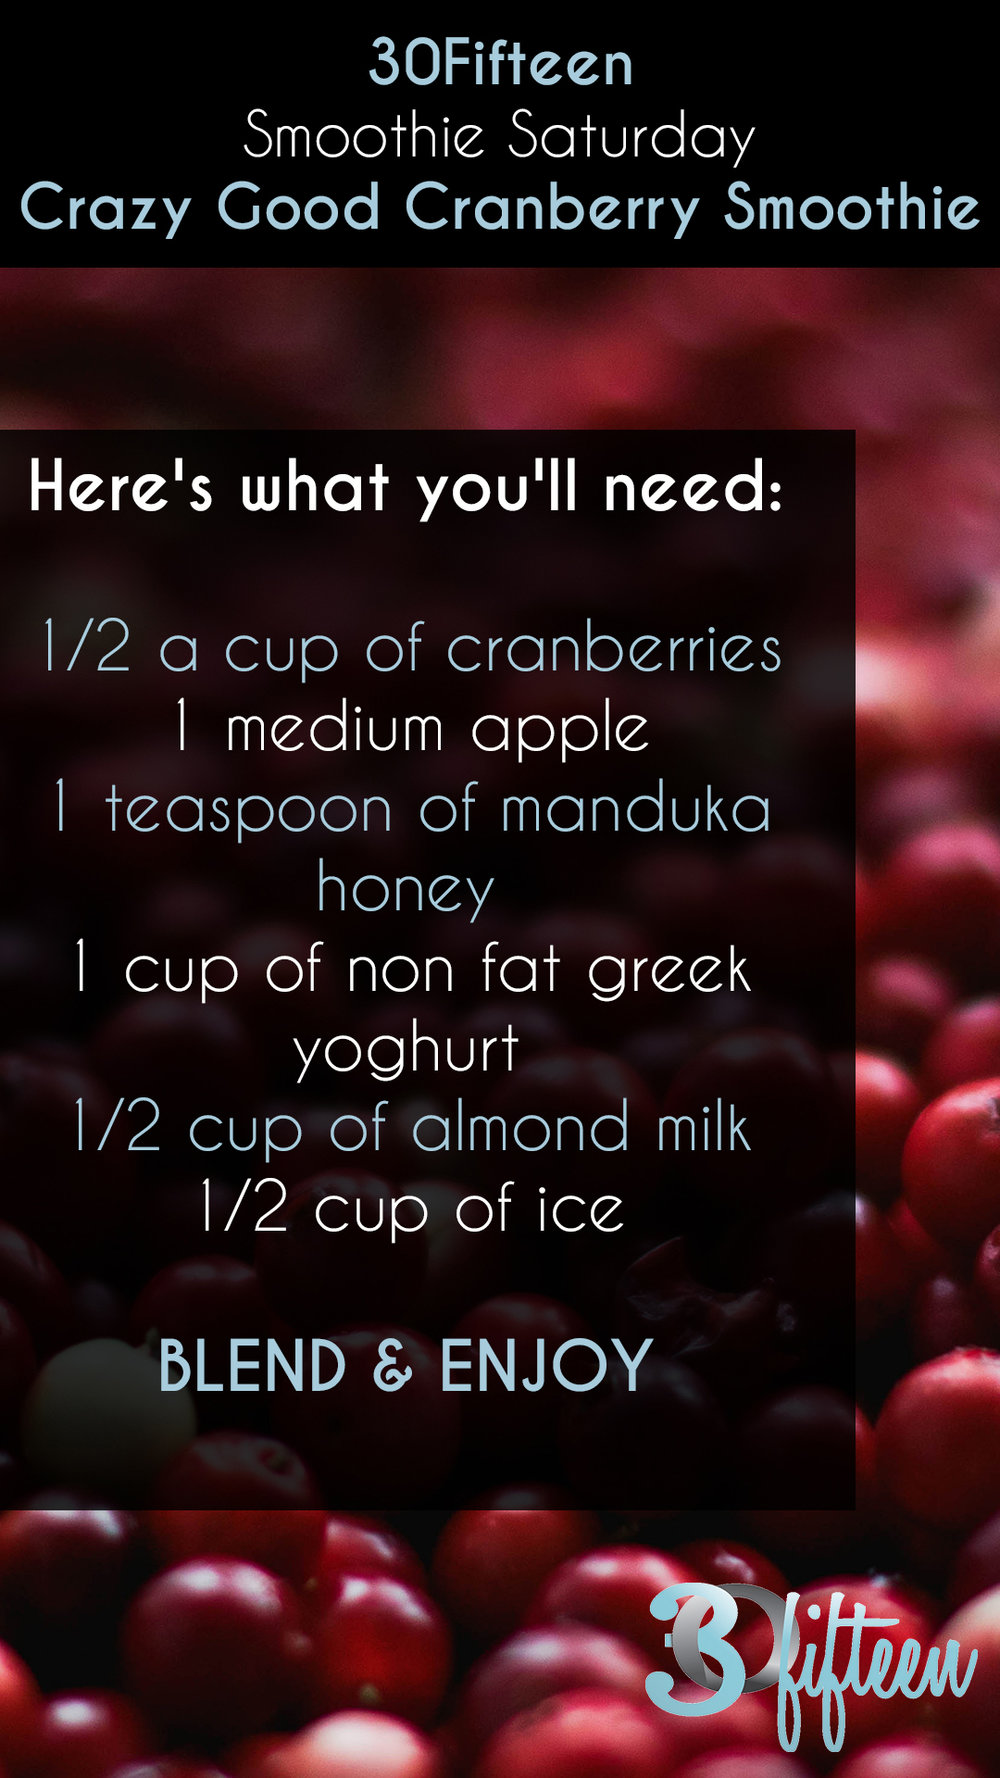 30Fifteen Cranberry smoothie recipe.jpg